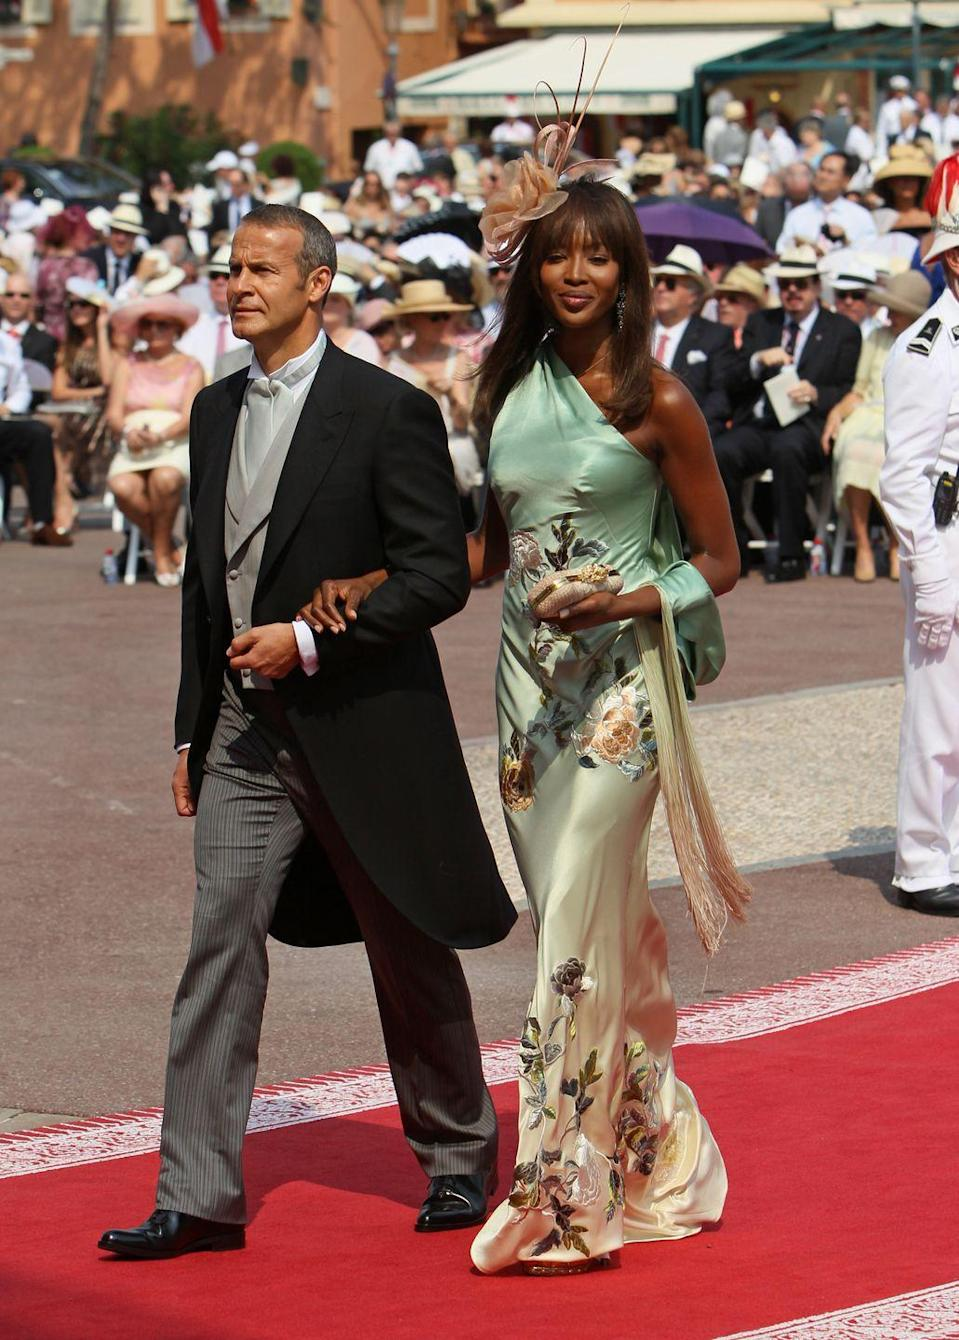 <p>A royal wedding requires a seriously fancy outfit, which suits Naomi Campbell perfectly.</p>